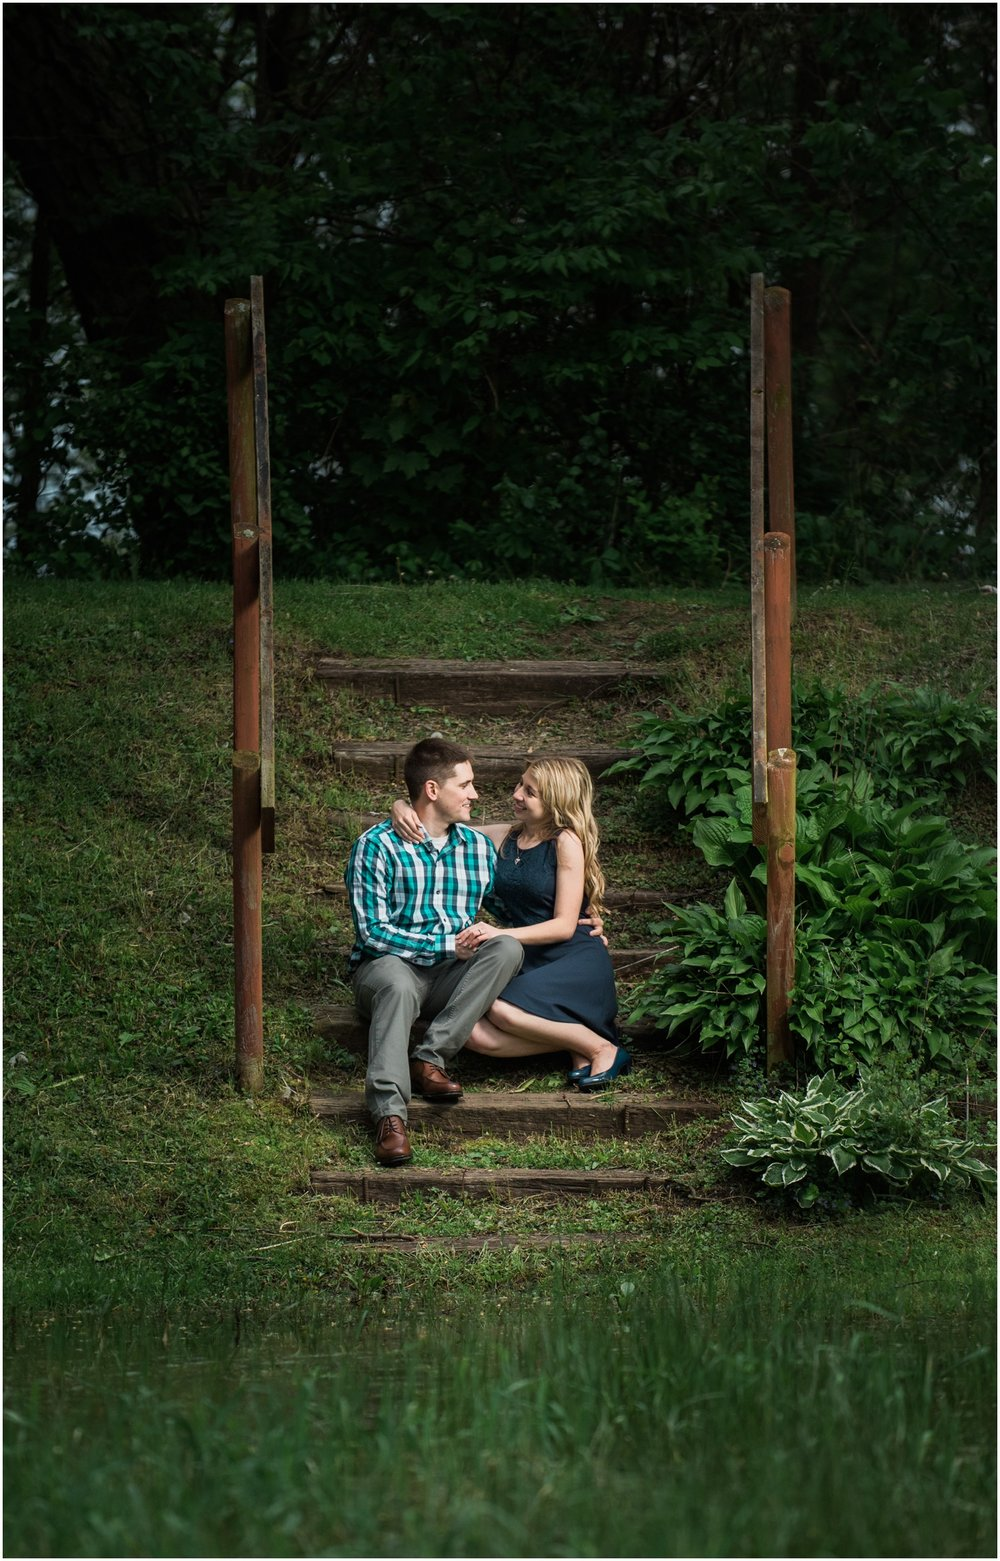 Paquette_Park_Portage_WI_Engagement_Photos_Heather_and_Derek_0031.jpg